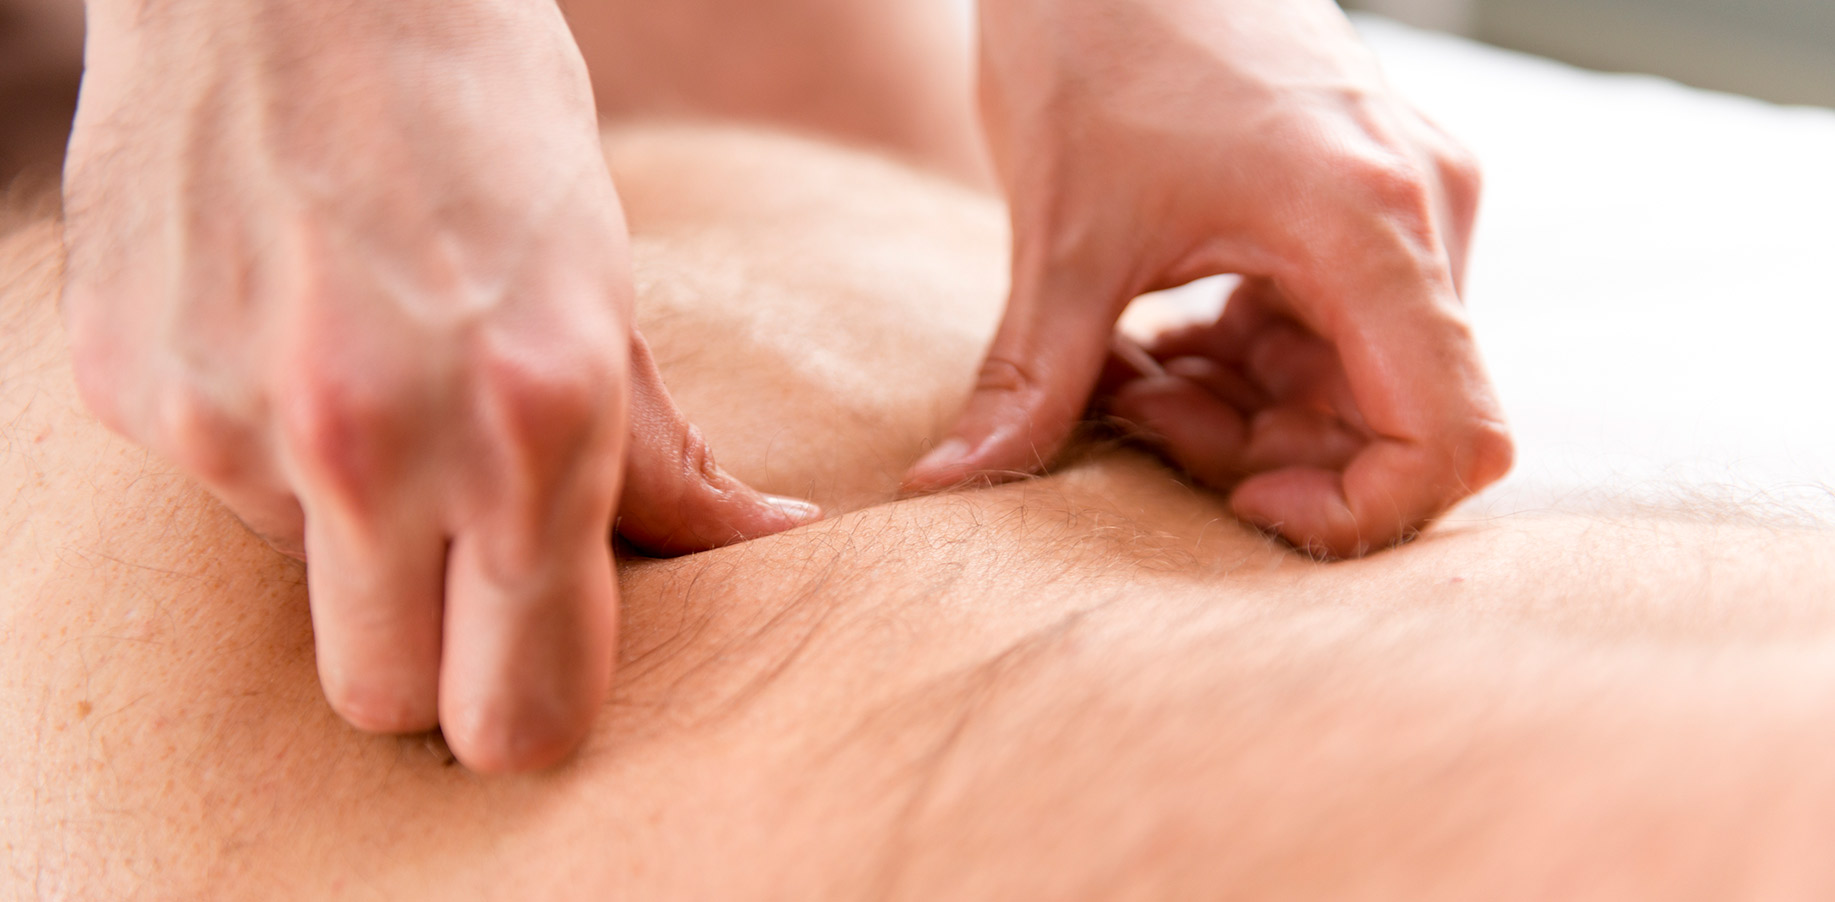 Gay massage in Barcelona